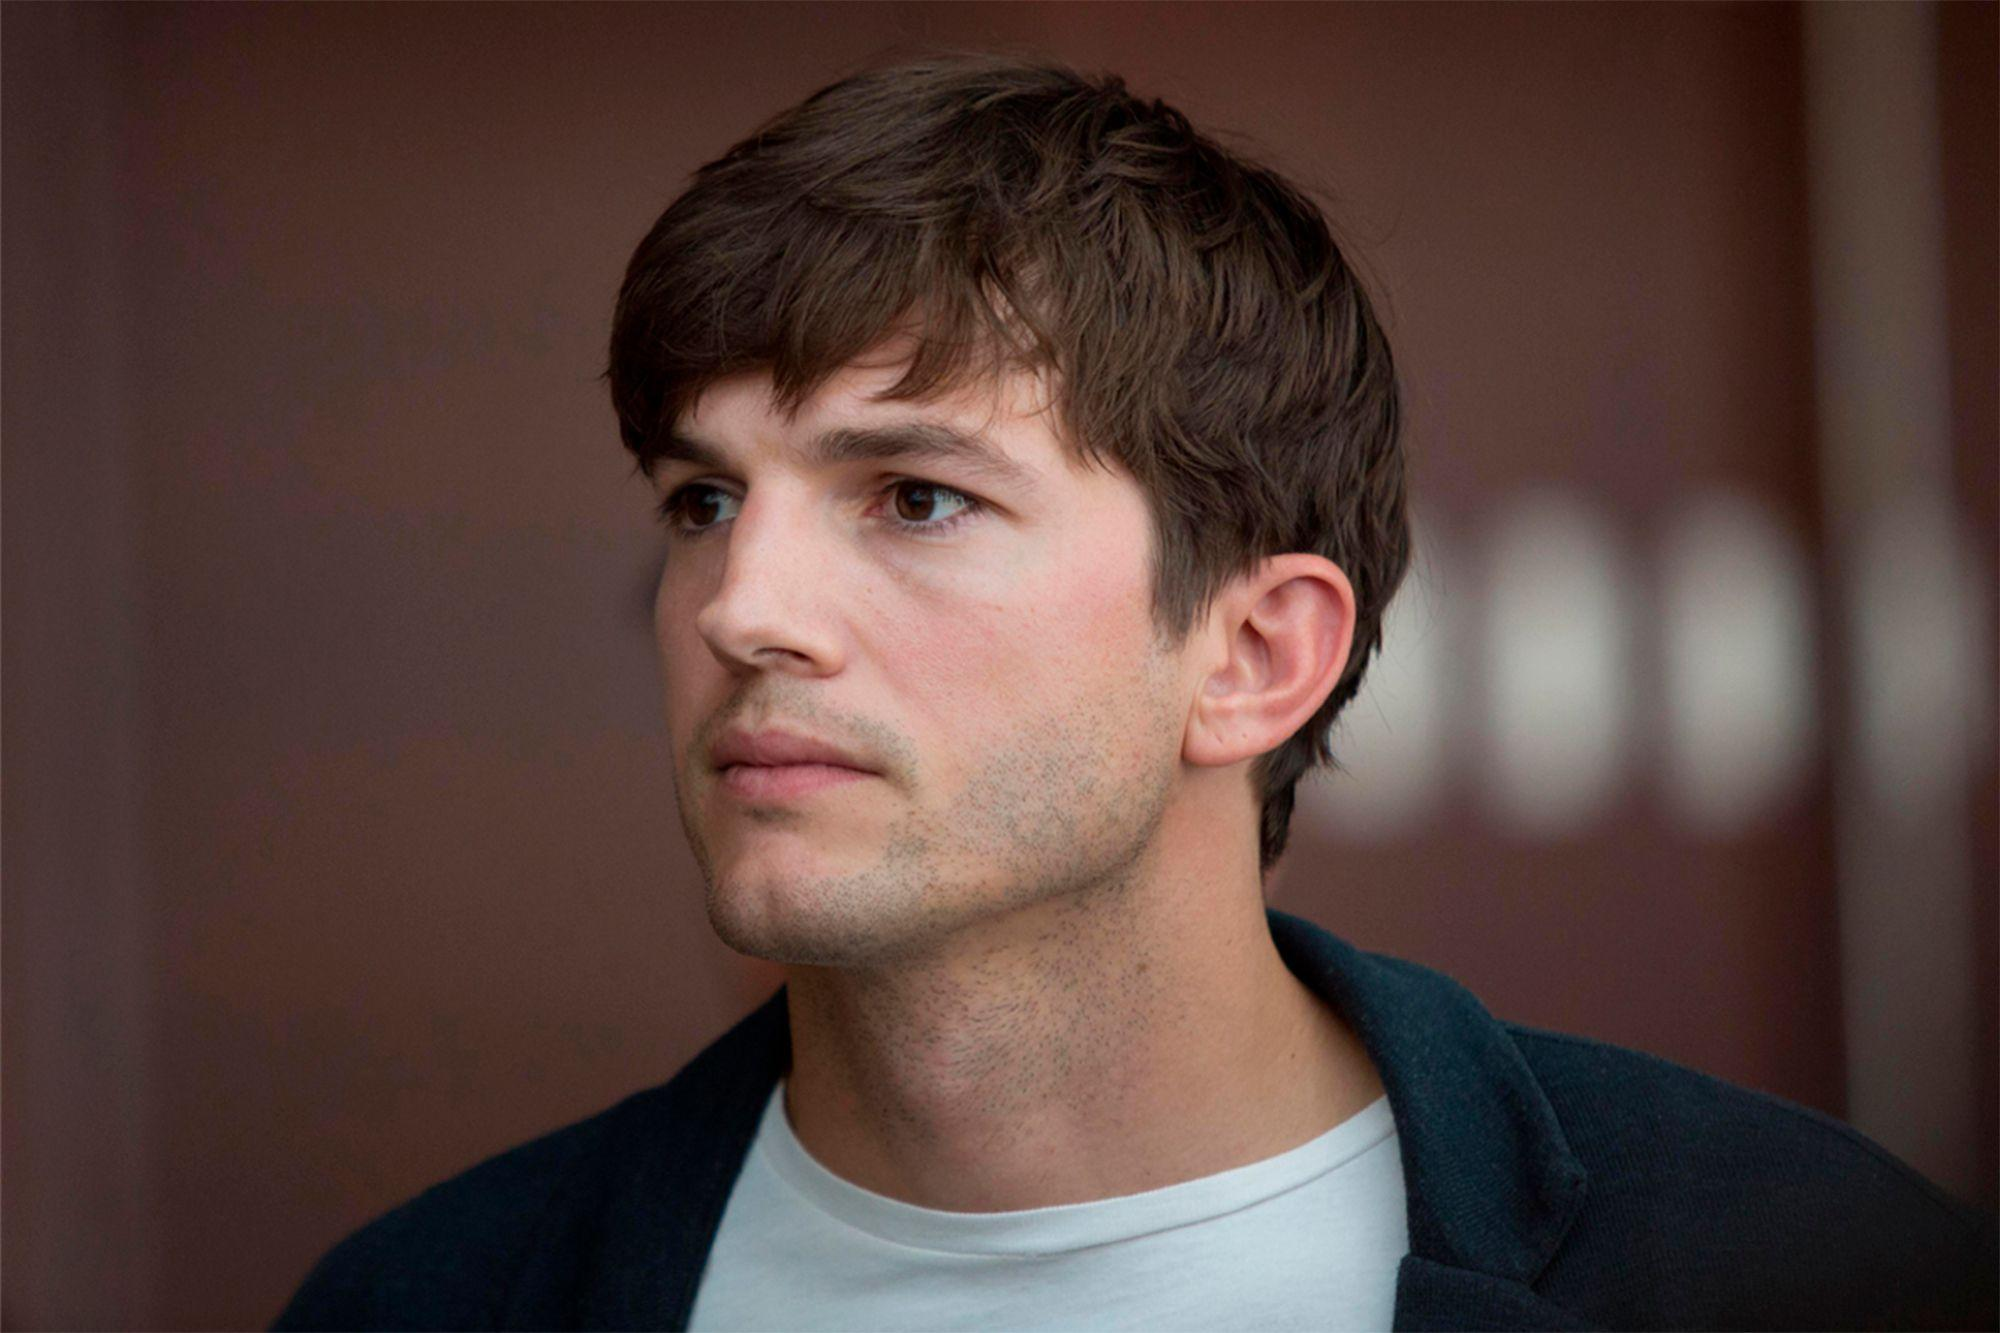 1626882162 Ashton Kutcher returned his ticket to space travel with Virgin